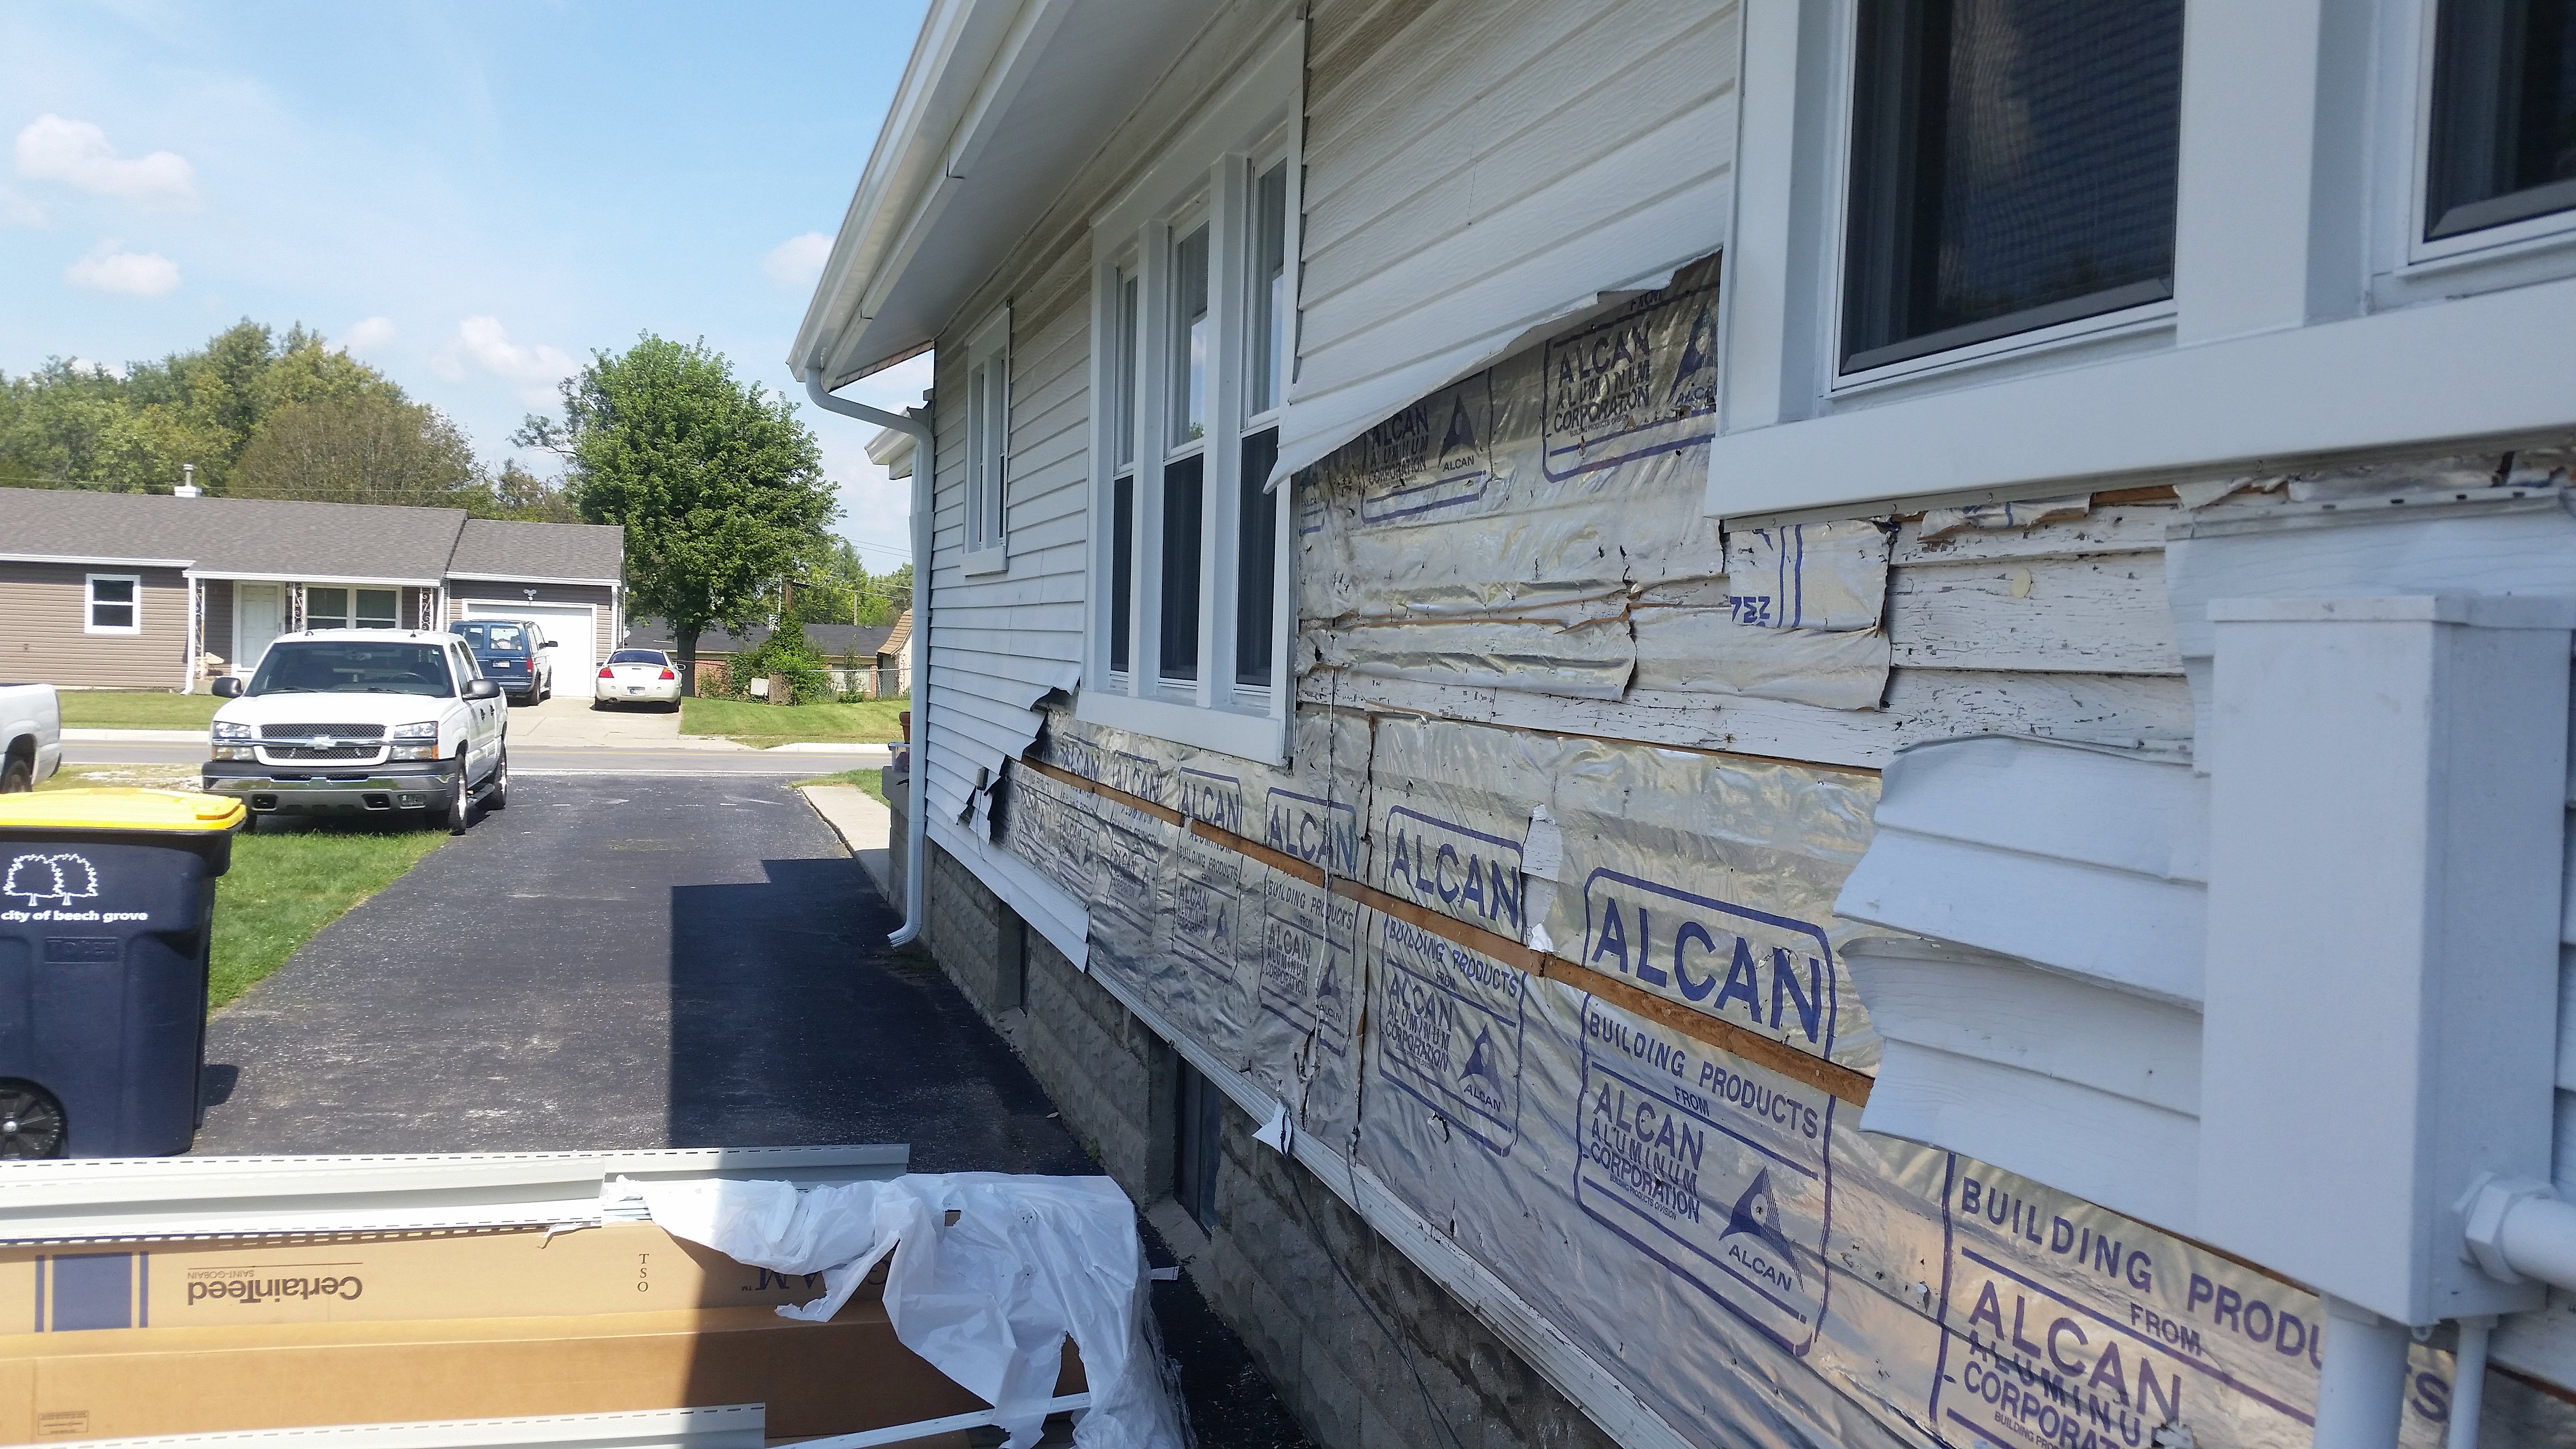 How to remove aluminum siding - Abc Junk Removal Hauling Waste Management And Demolition Aluminum Siding Tear Off